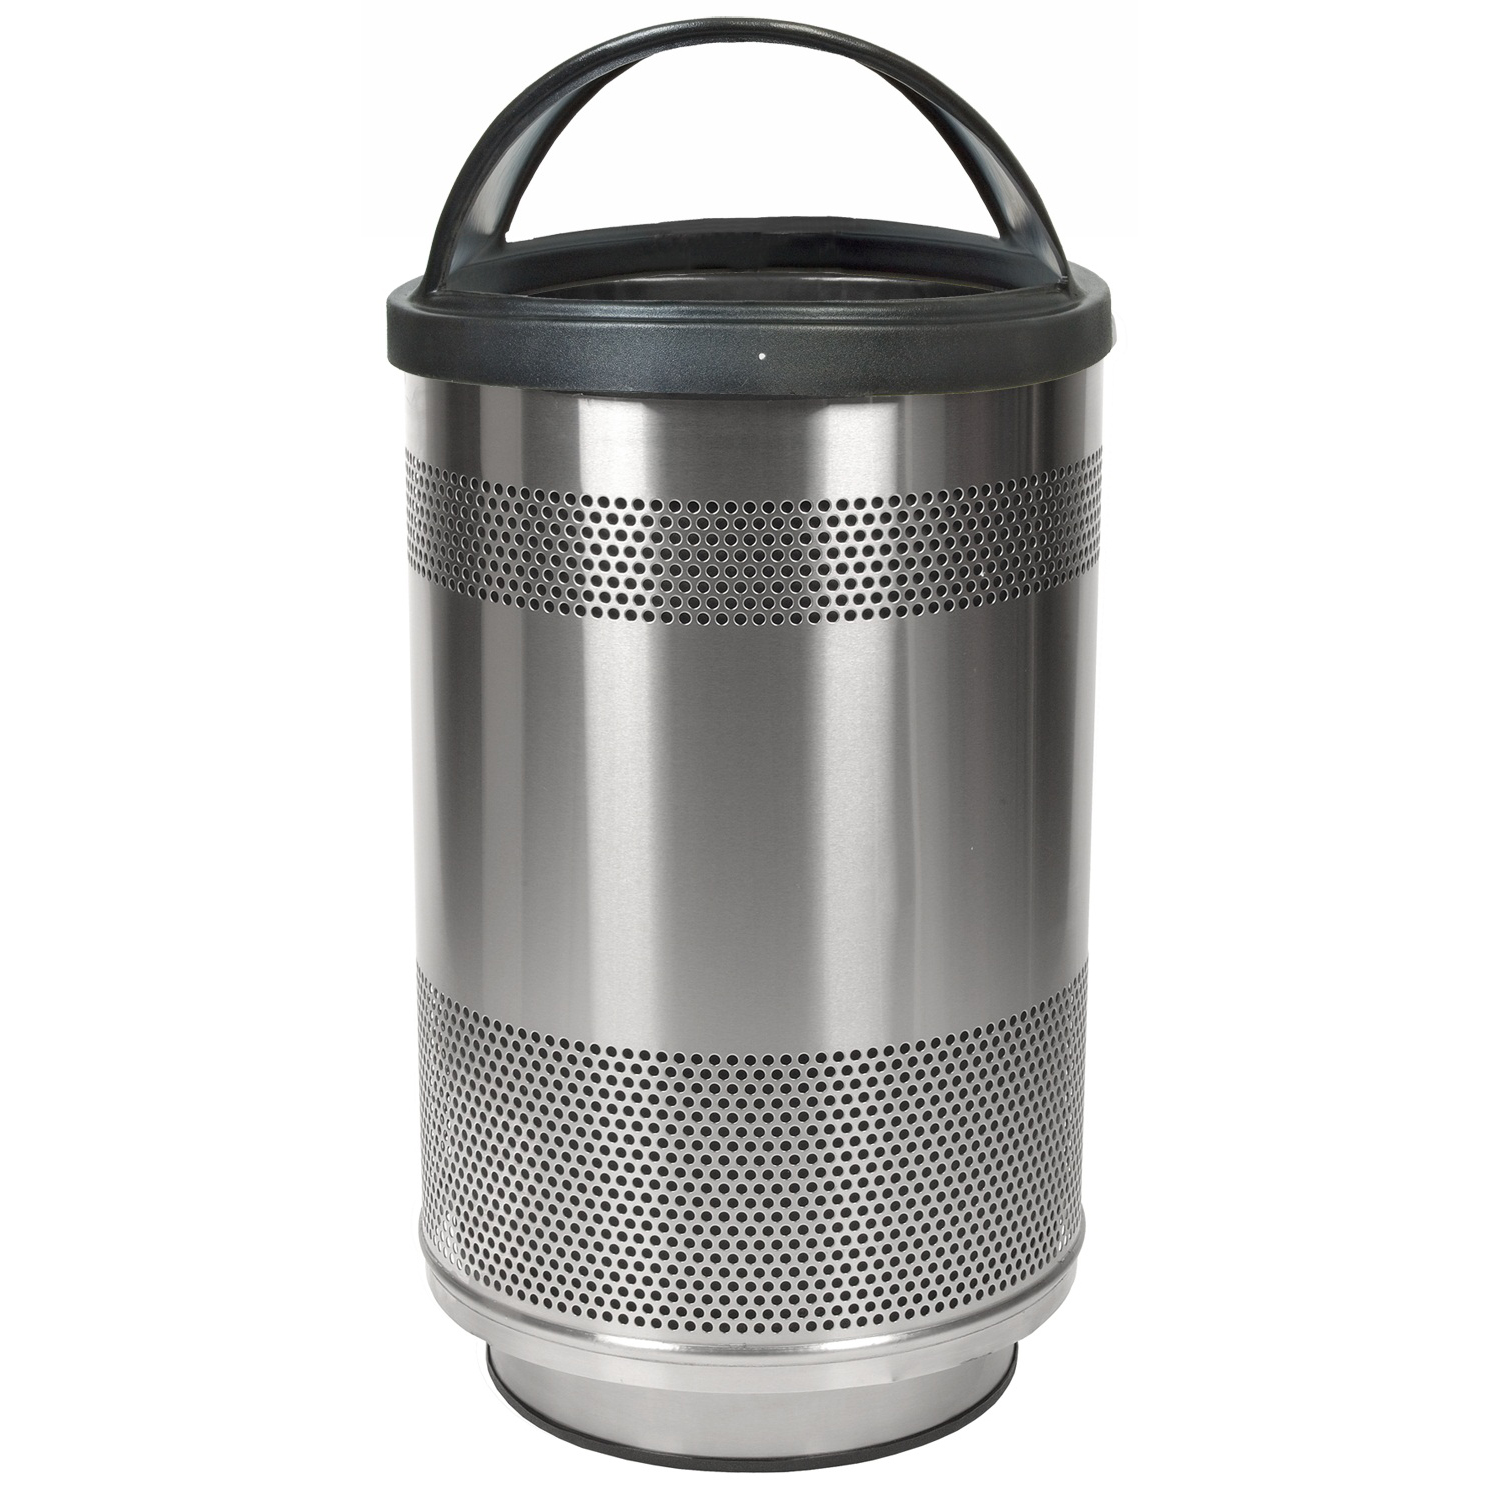 55 gallon perforated steel garbage can w hood top in stainless steel trash cans warehouse. Black Bedroom Furniture Sets. Home Design Ideas